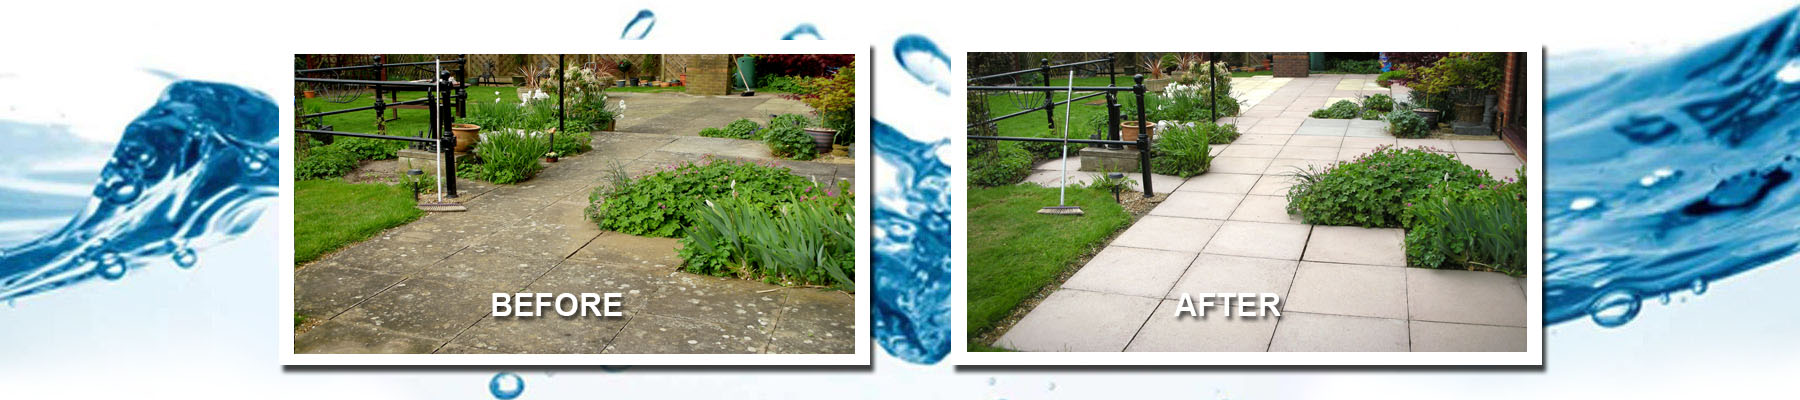 Pressure washing services in Worcestershire